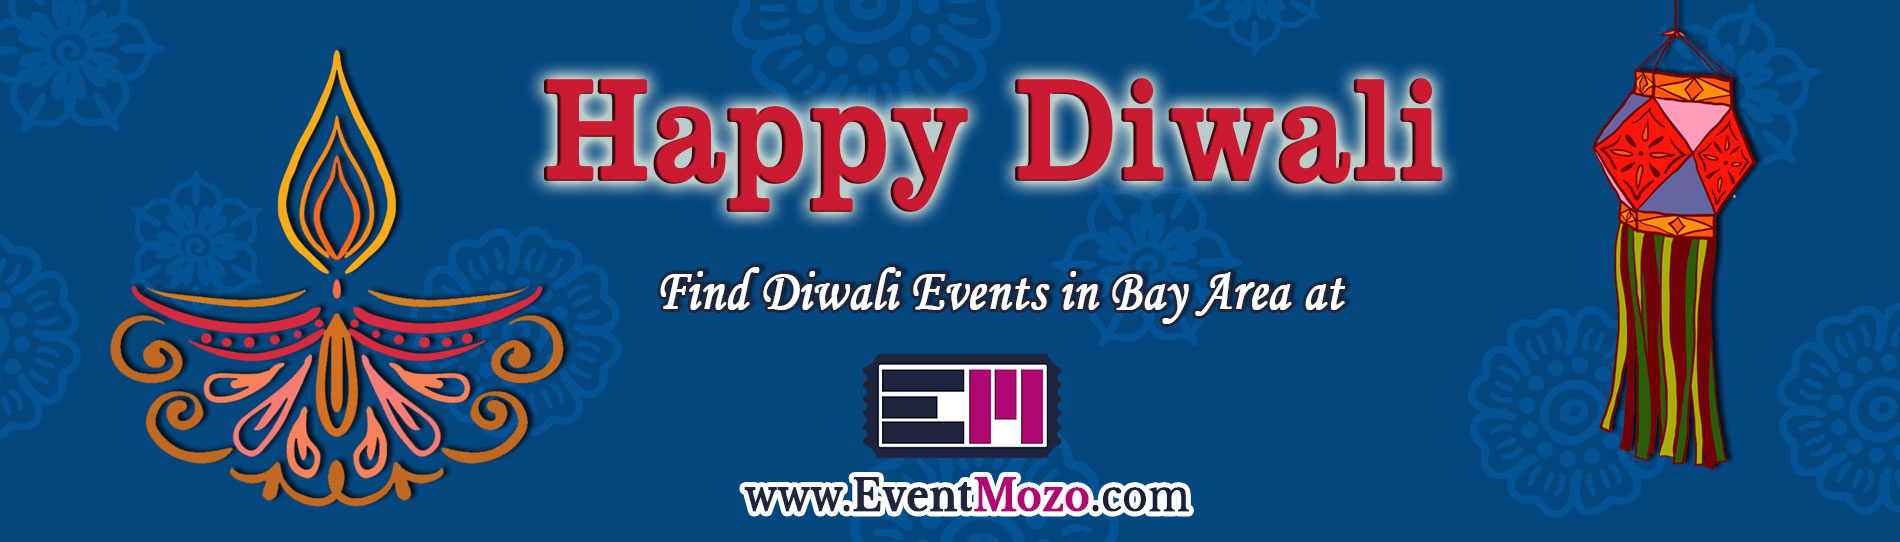 EventMozo Diwali Events in Bay Area